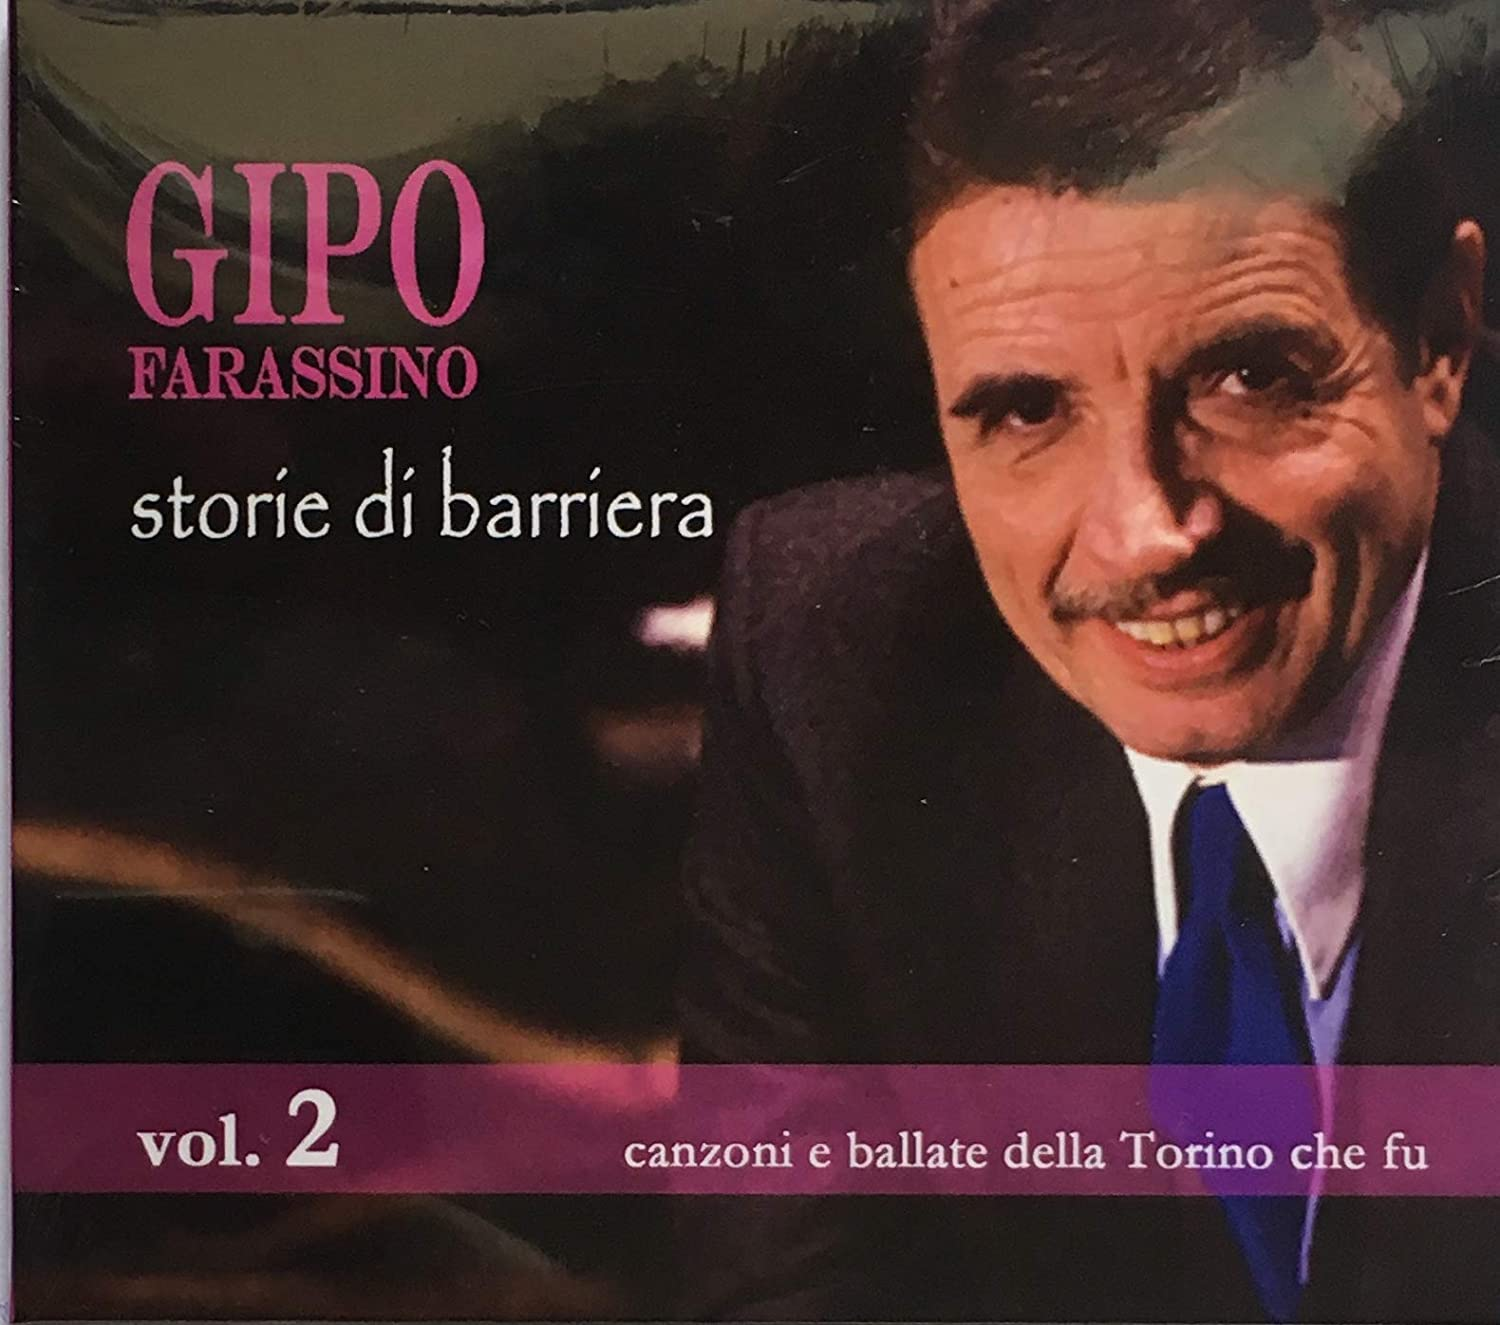 GIPO FARASSINO - STORIE DI BARRIERA VOL. 2 (CD)